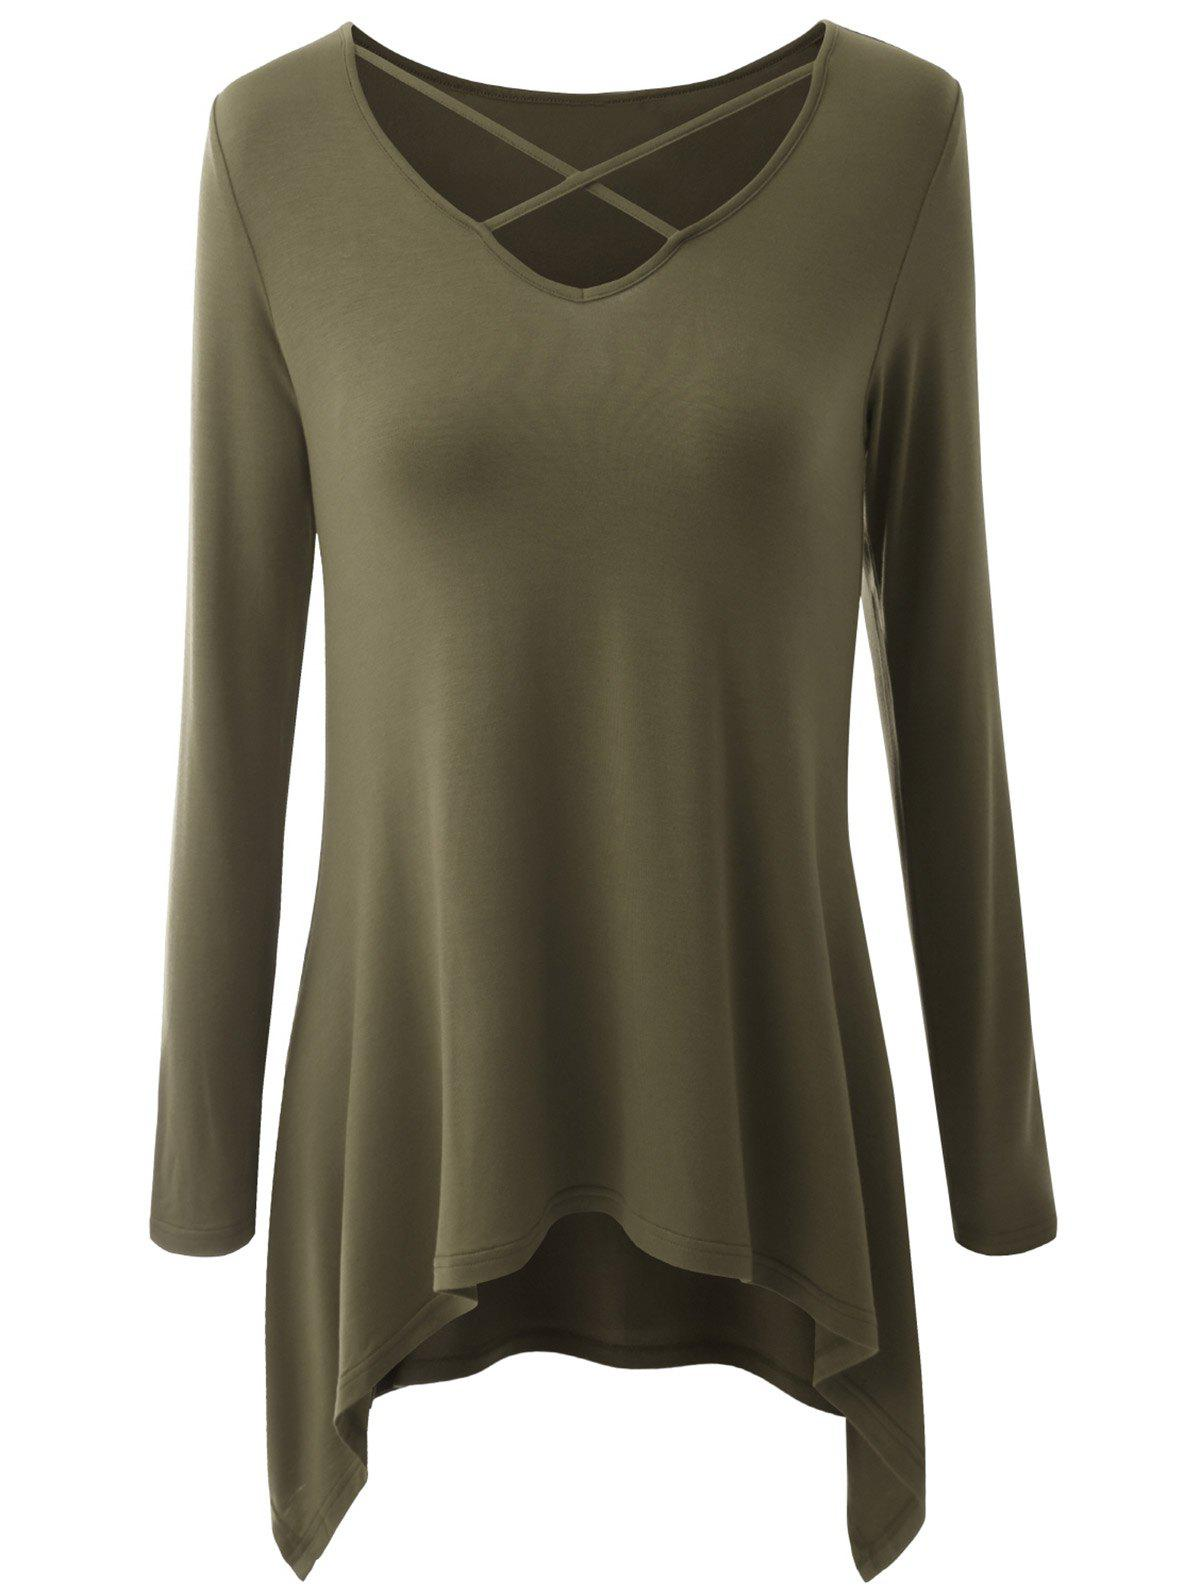 Plus Size Criss Cross Asymmetrical T-shirt - ARMY GREEN XL